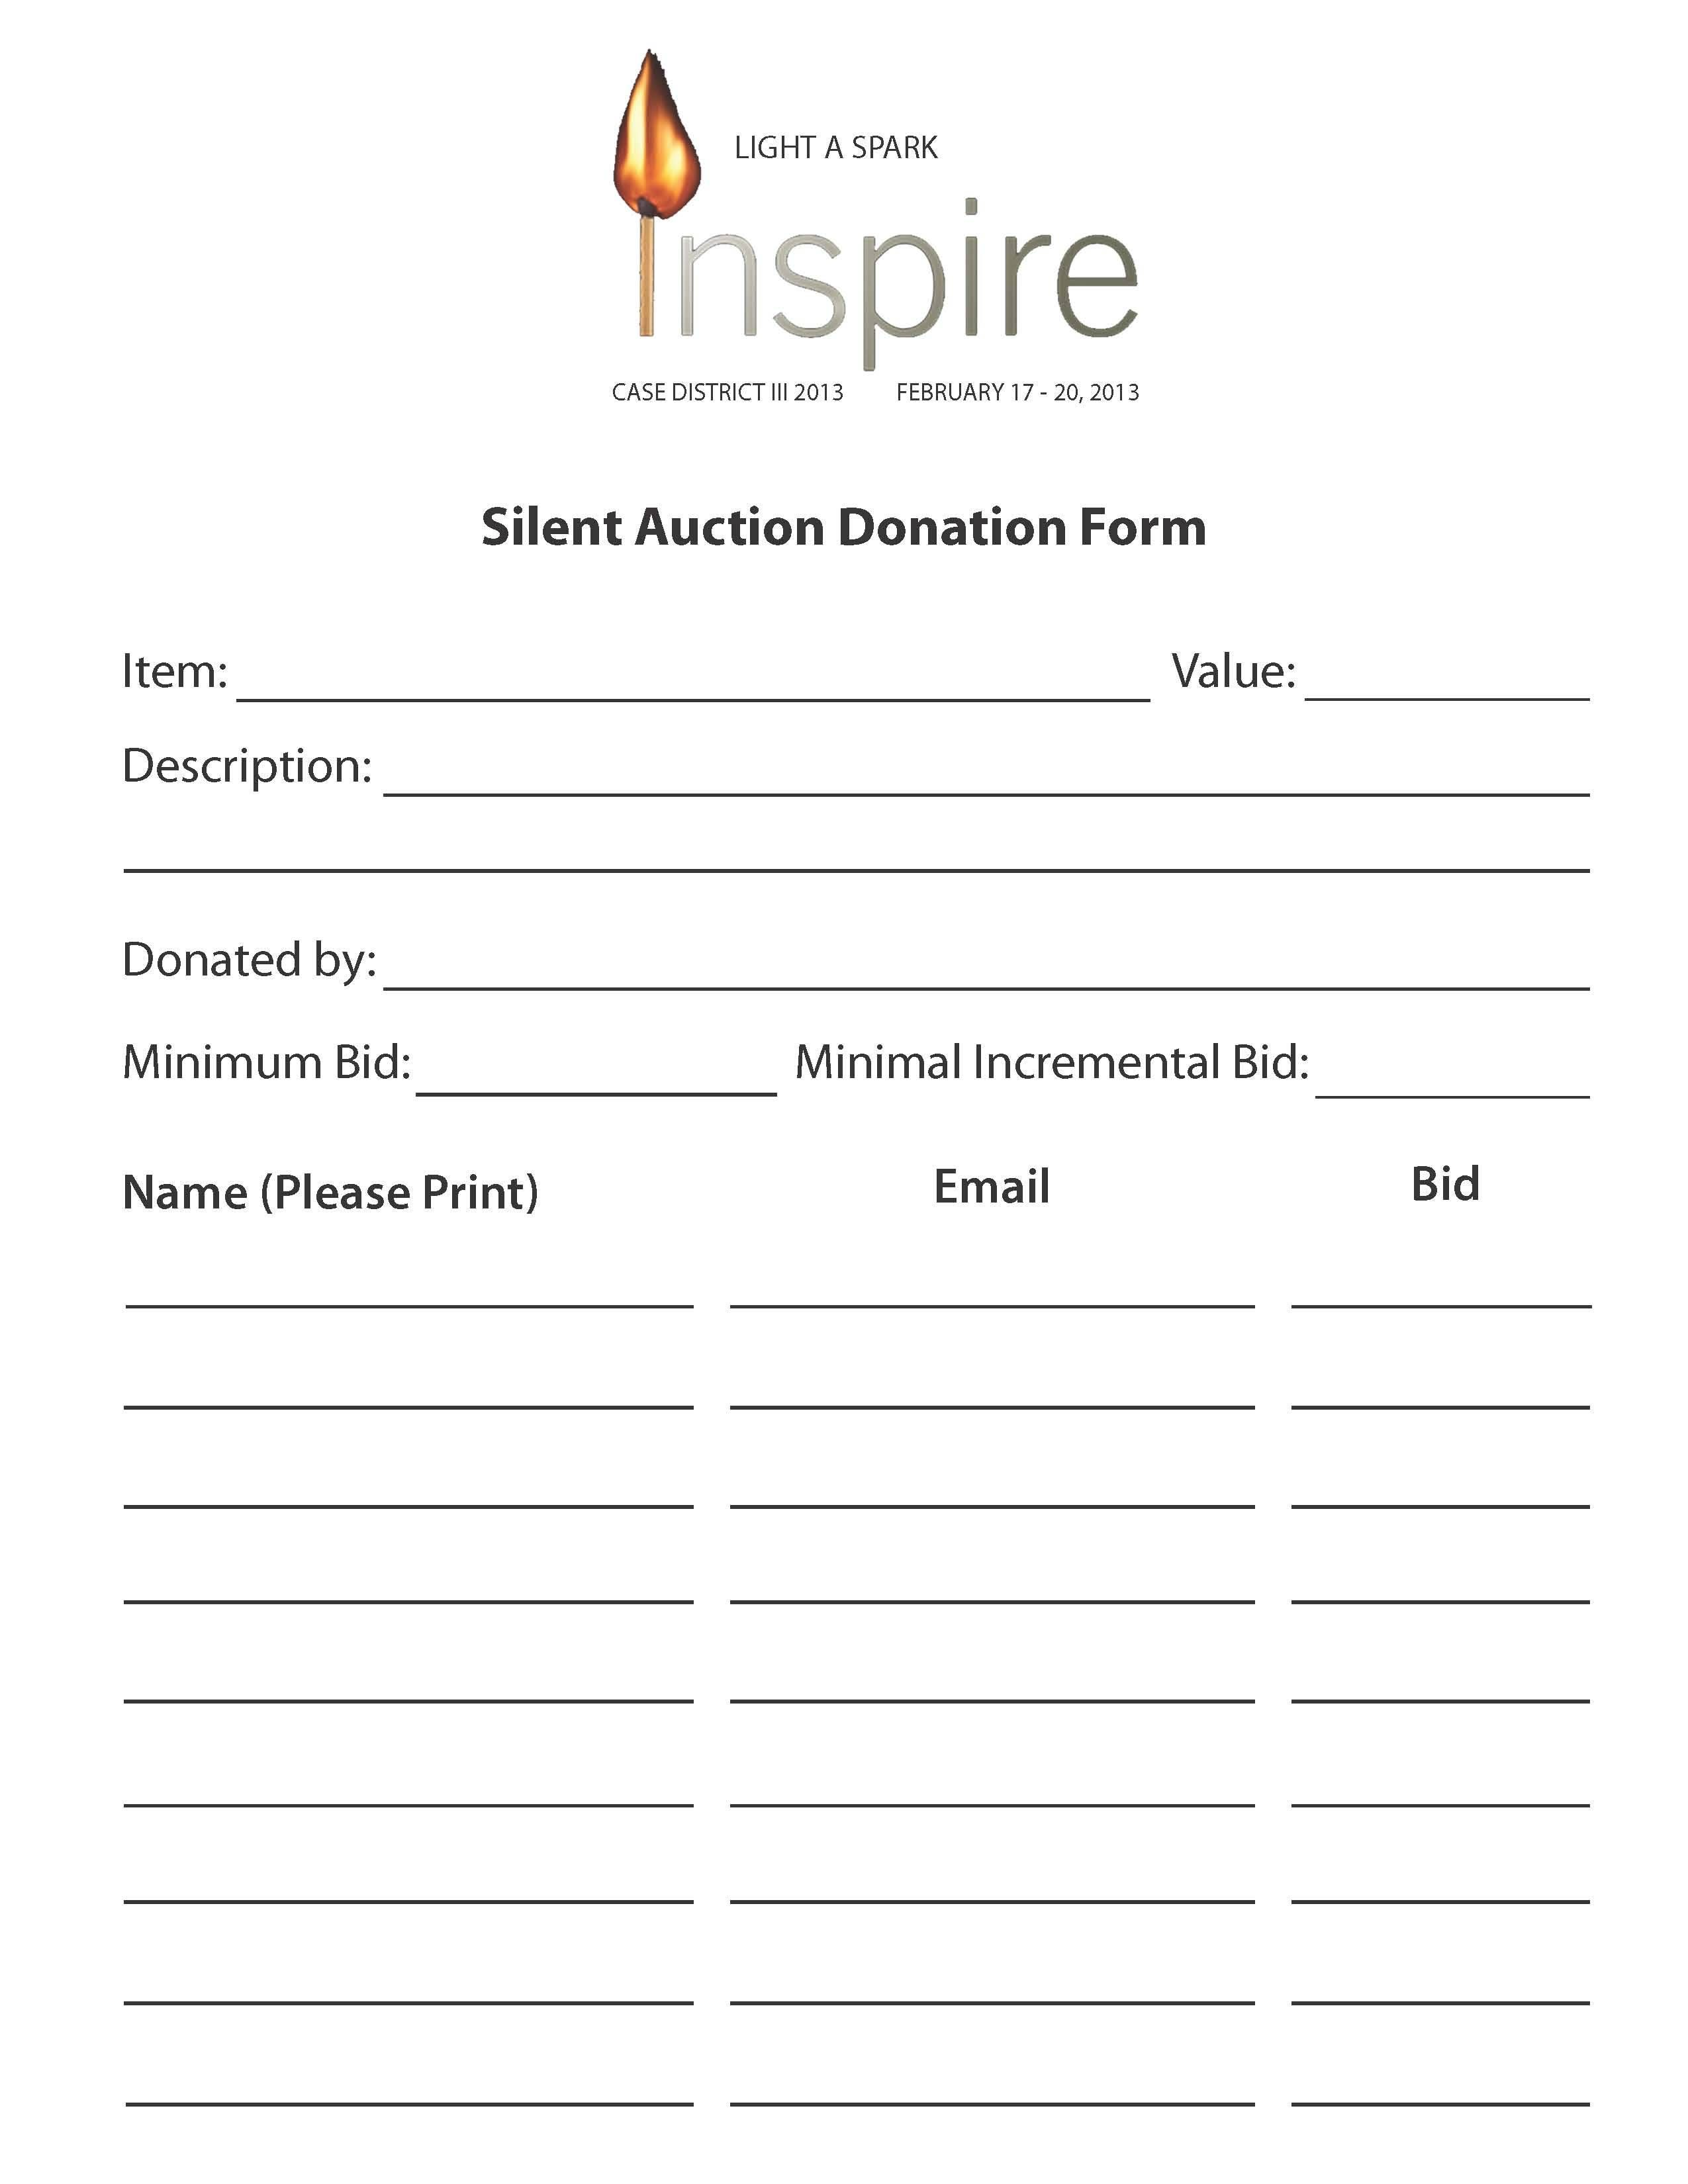 Template For Silent Auction Bid Sheet Check More At Https Sscresult2017 Bd Com Template For Silent Aucti Silent Auction Bid Sheets Silent Auction Auction Bid Silent auction donation form template